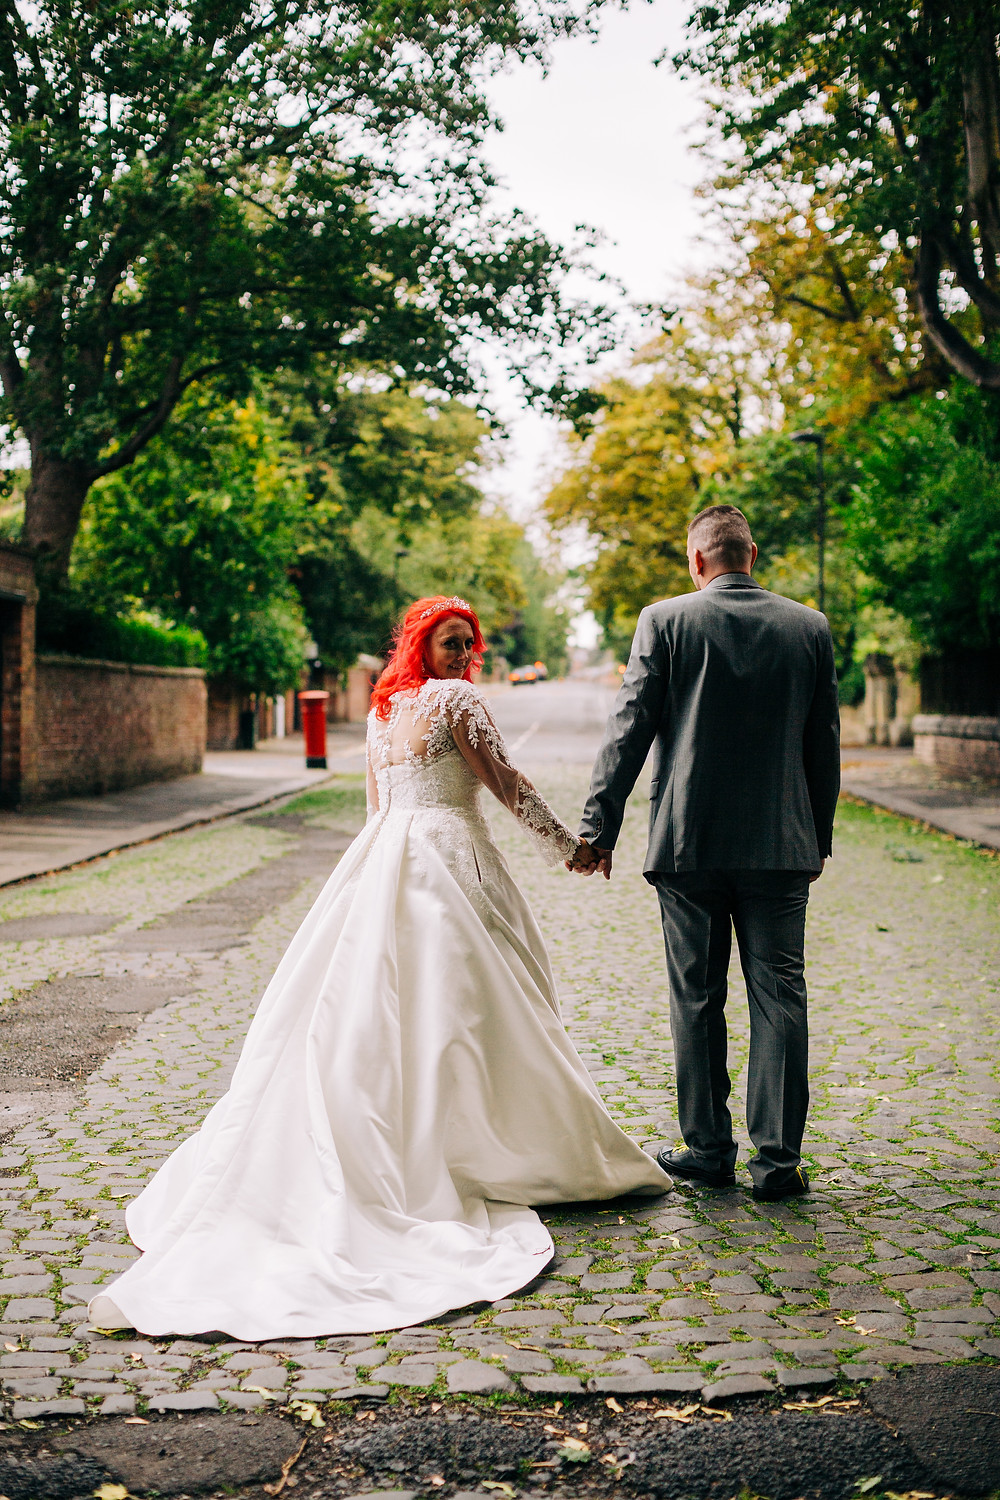 Colourful alternative wedding photography showing bride and groom during portrait session on cobbled leafy street near Holiday Inn Newcastle Jesmond